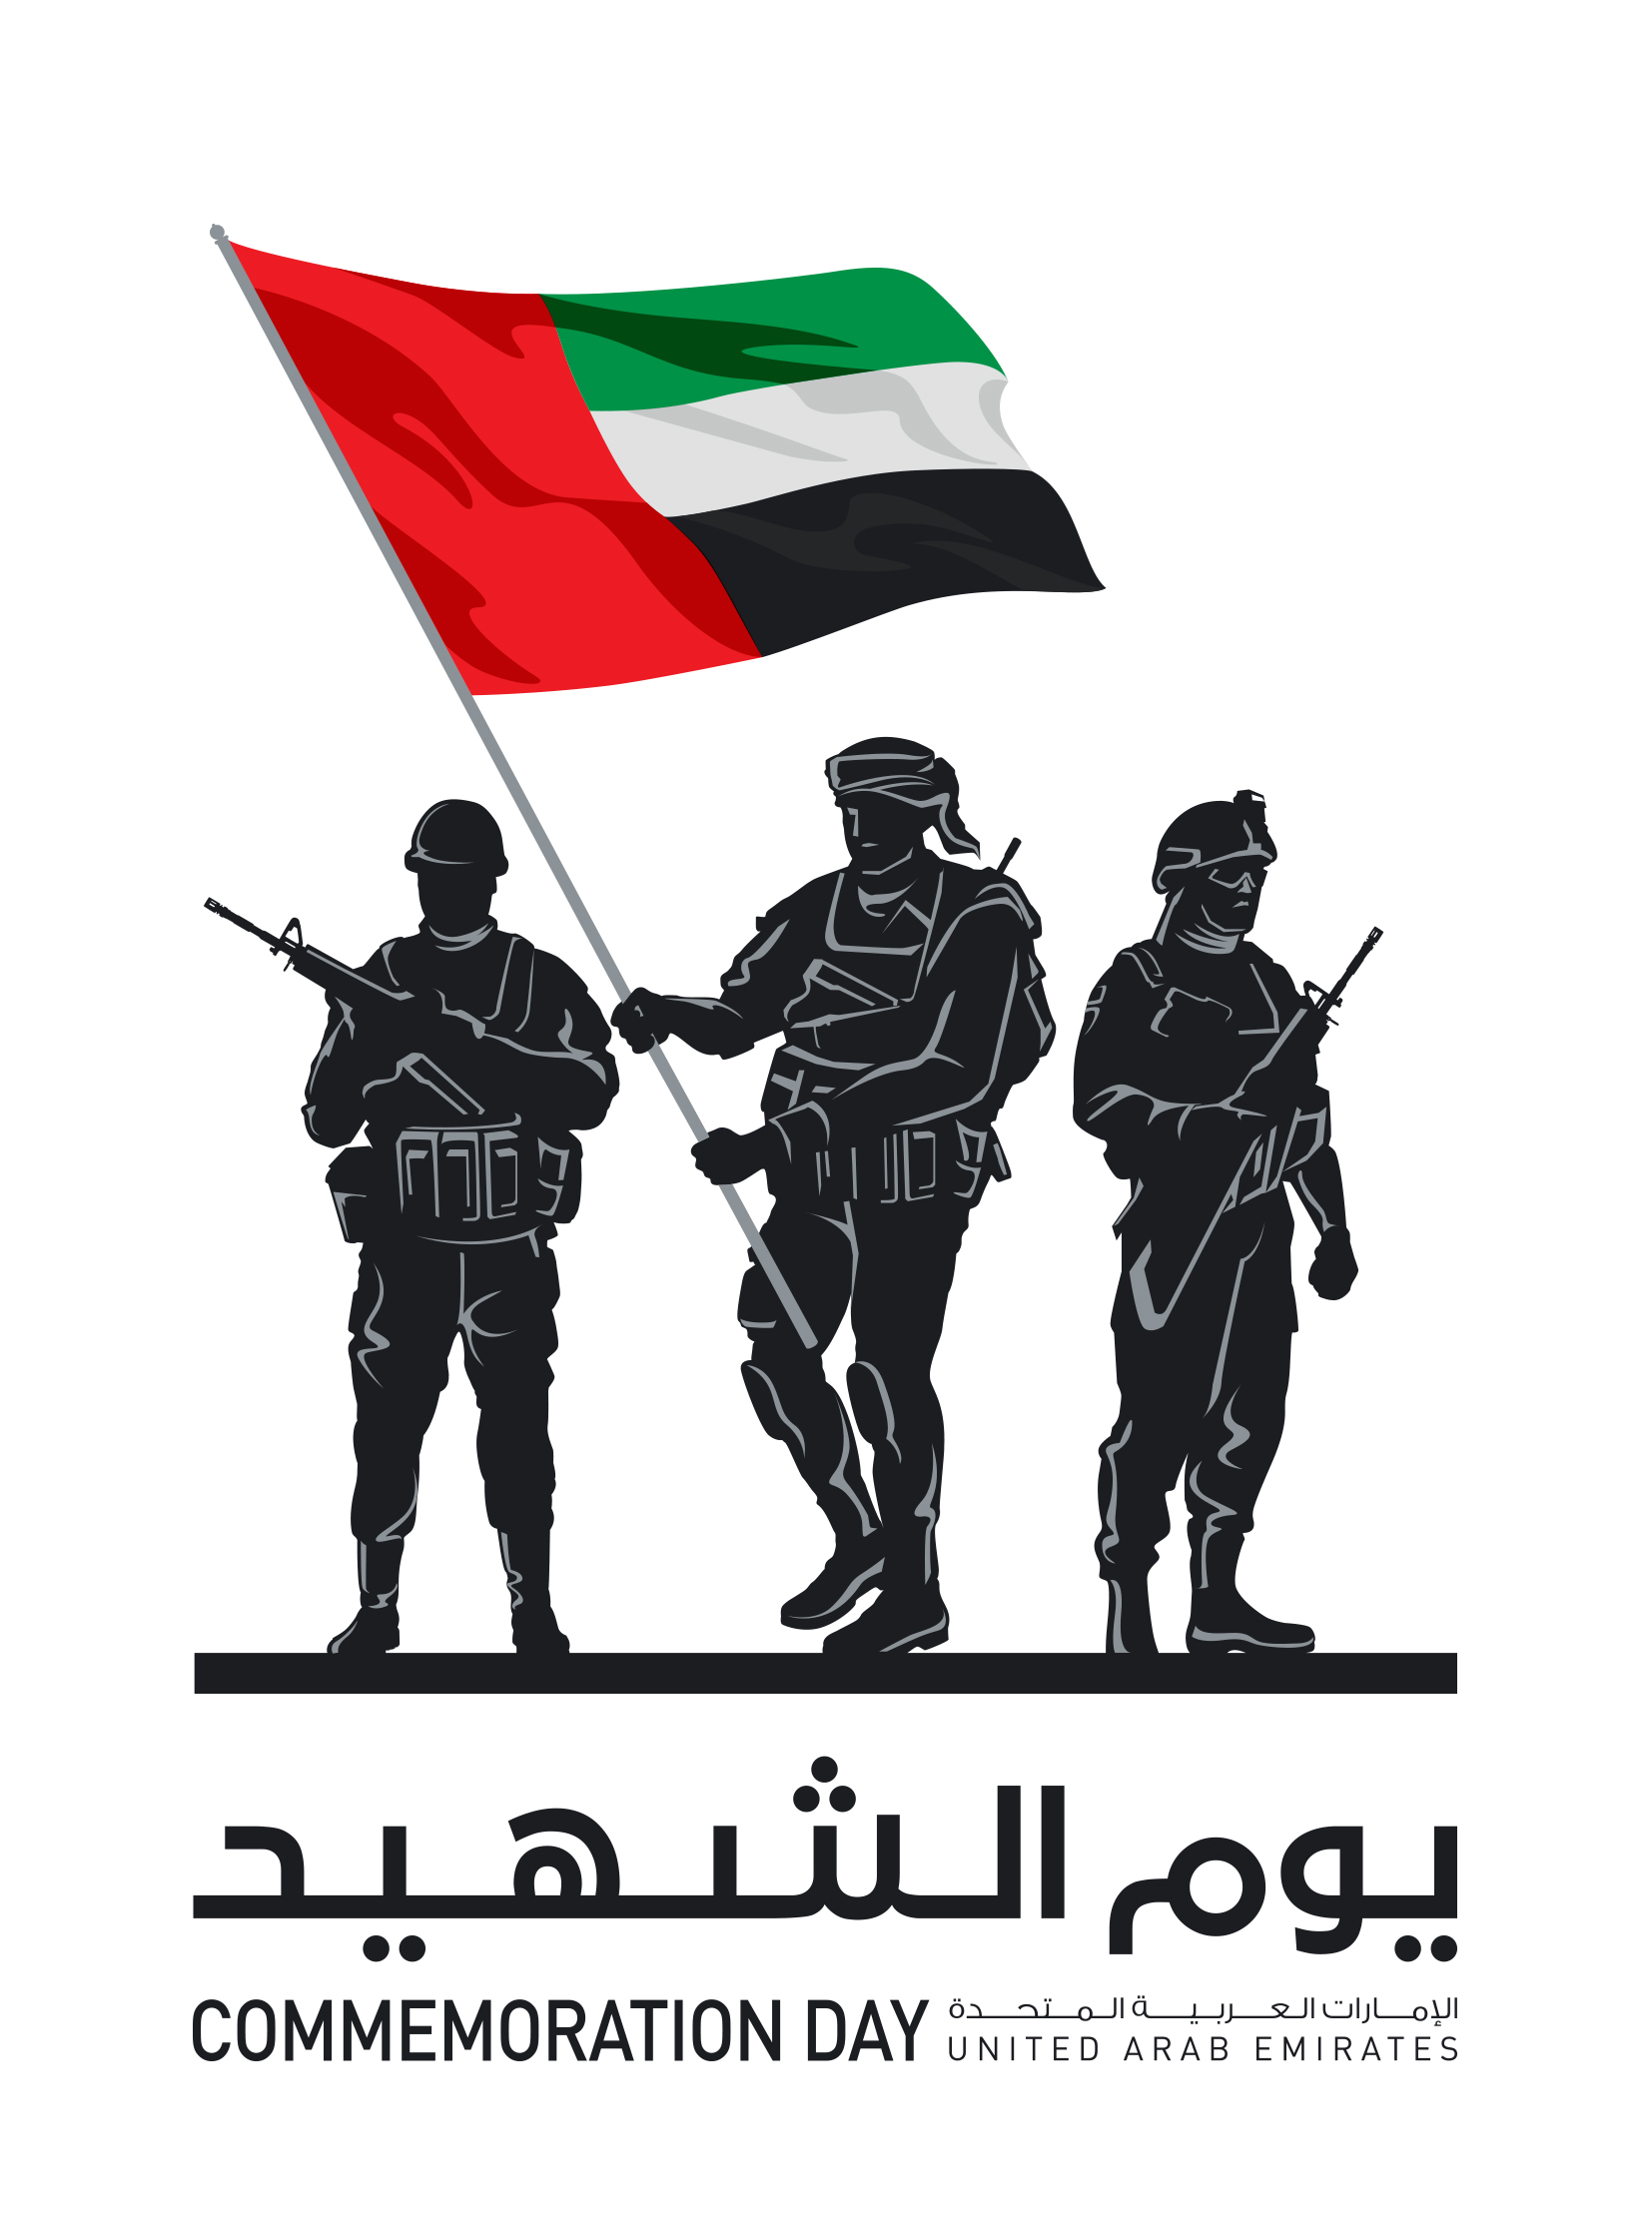 Happy National UAE Day we wish you a day full of blessings.